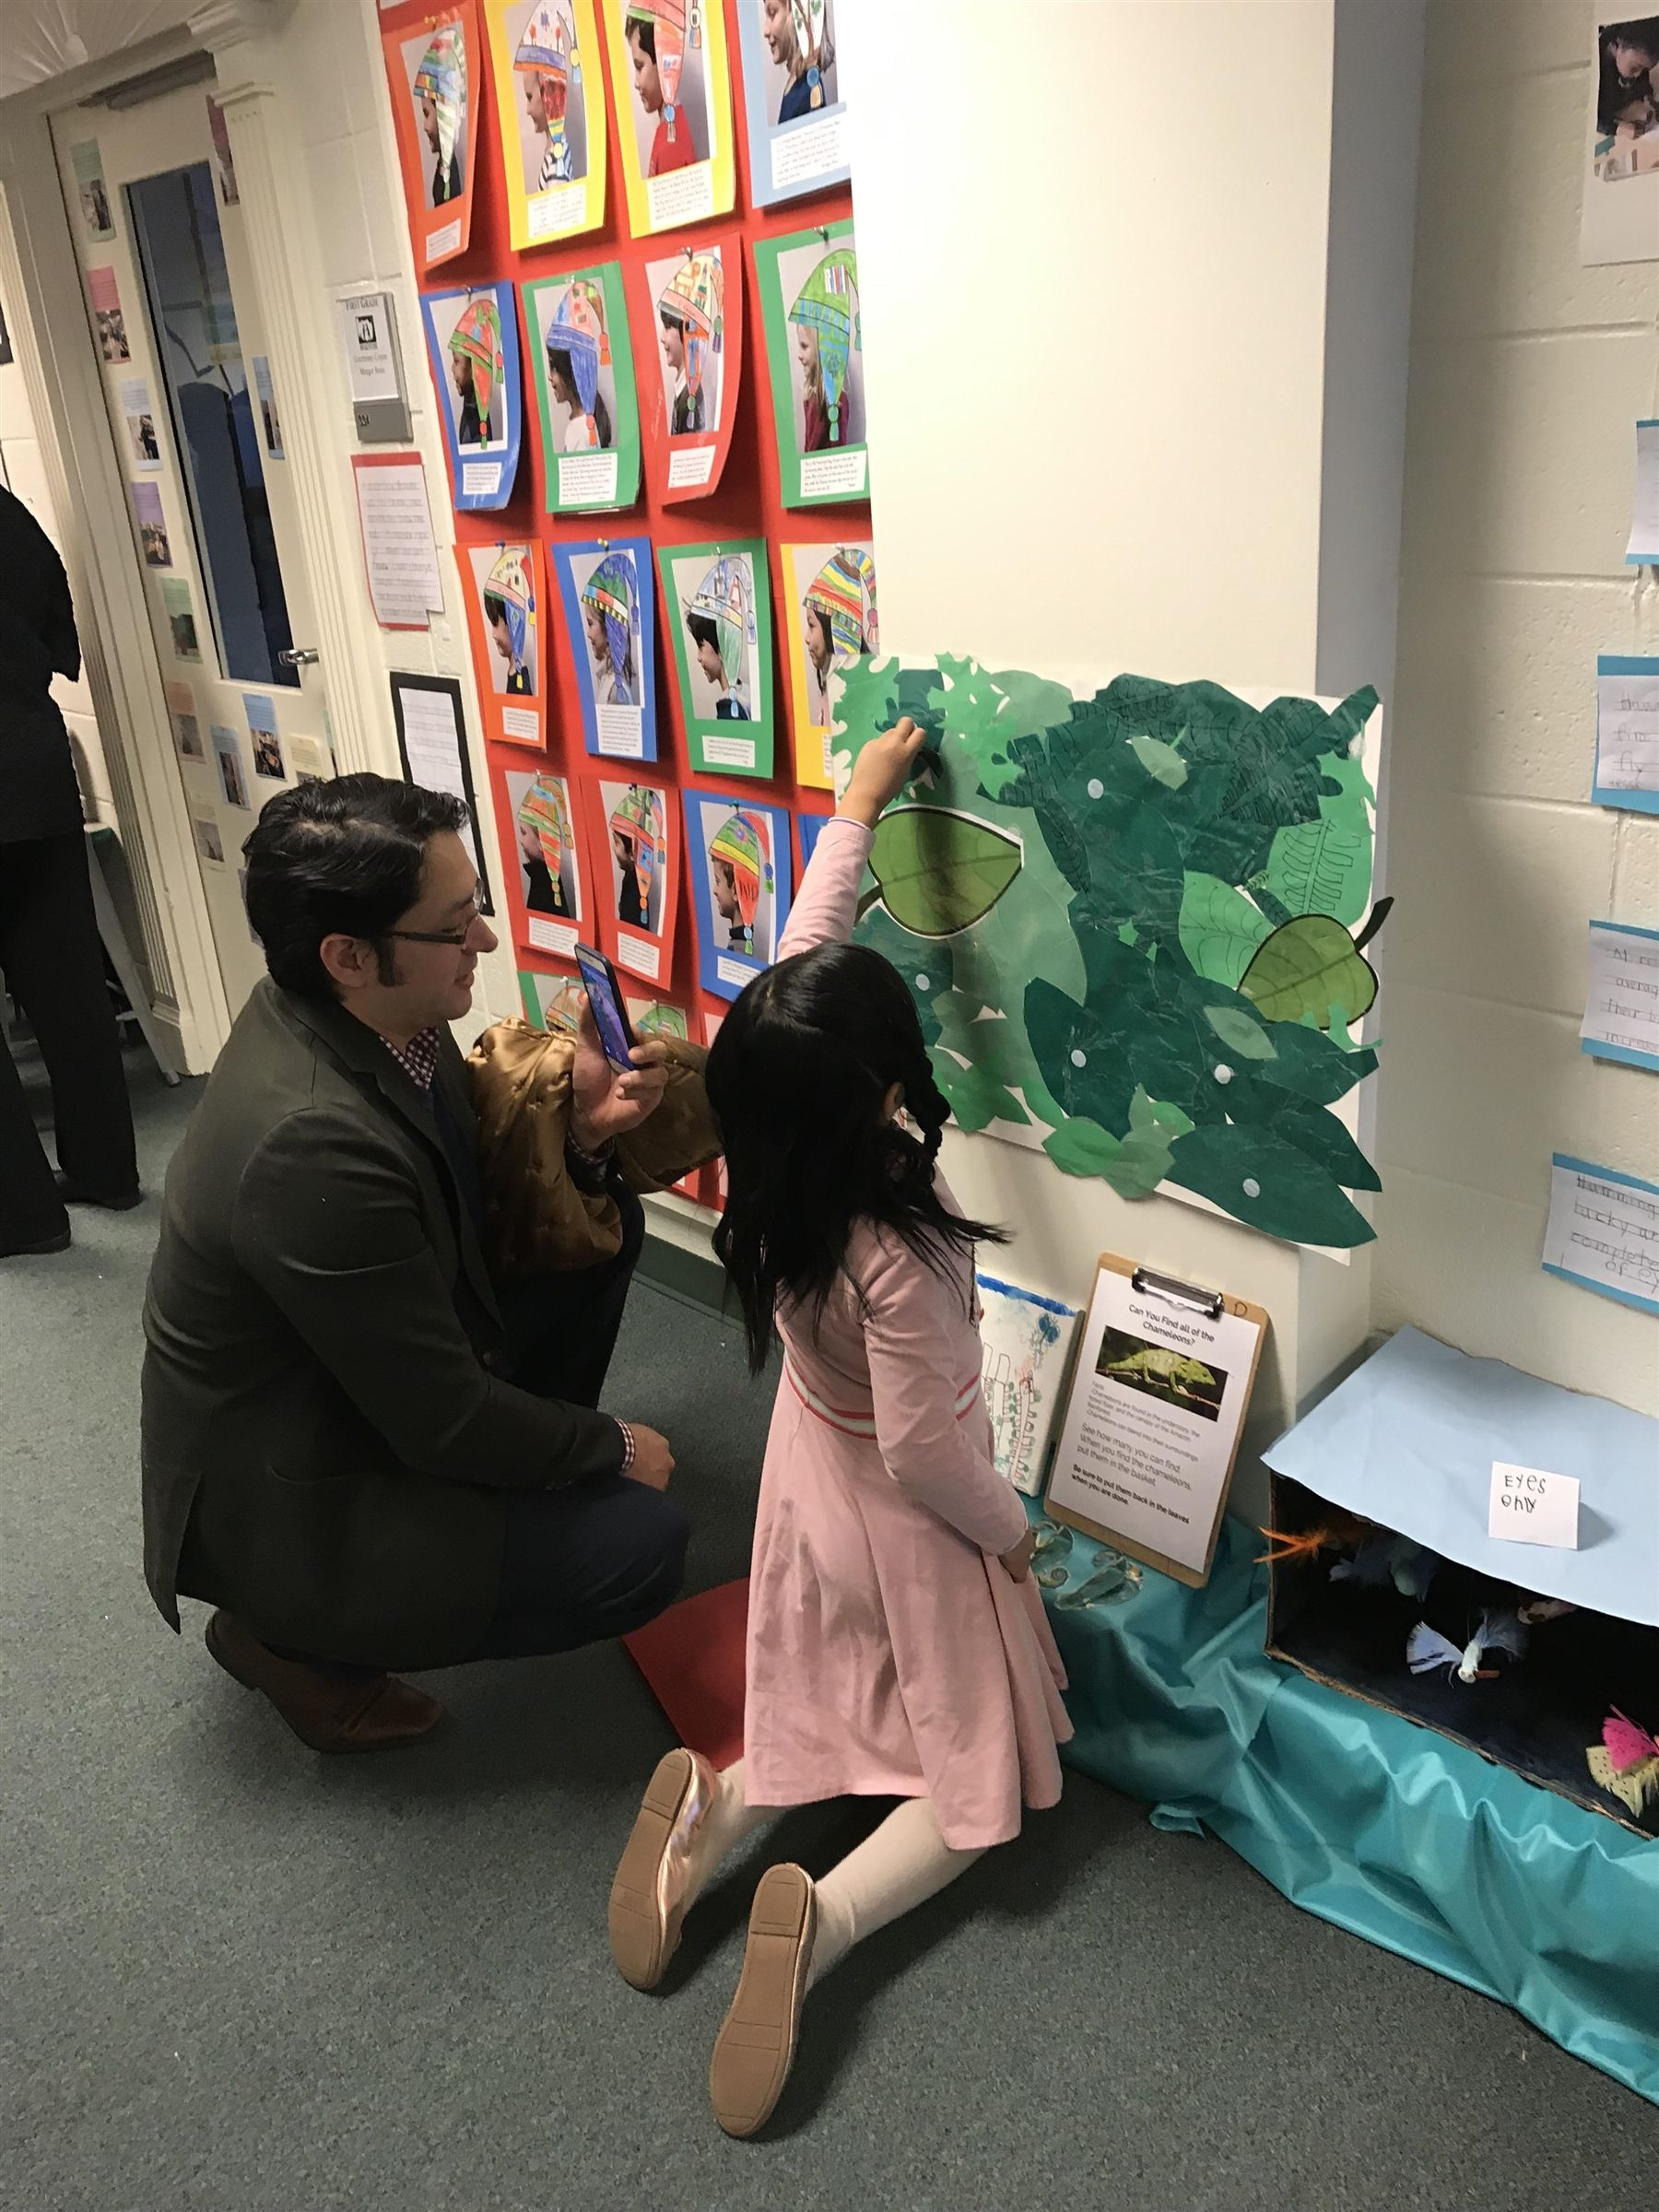 Believing that hands-on, inquiry-based learning is best, Beauvoir's Global Studies culminates in the annual Museum Night celebration during which each grade designs and presents interactive museum exhibits about the country they've studied to share with fellow students, parents and guests.